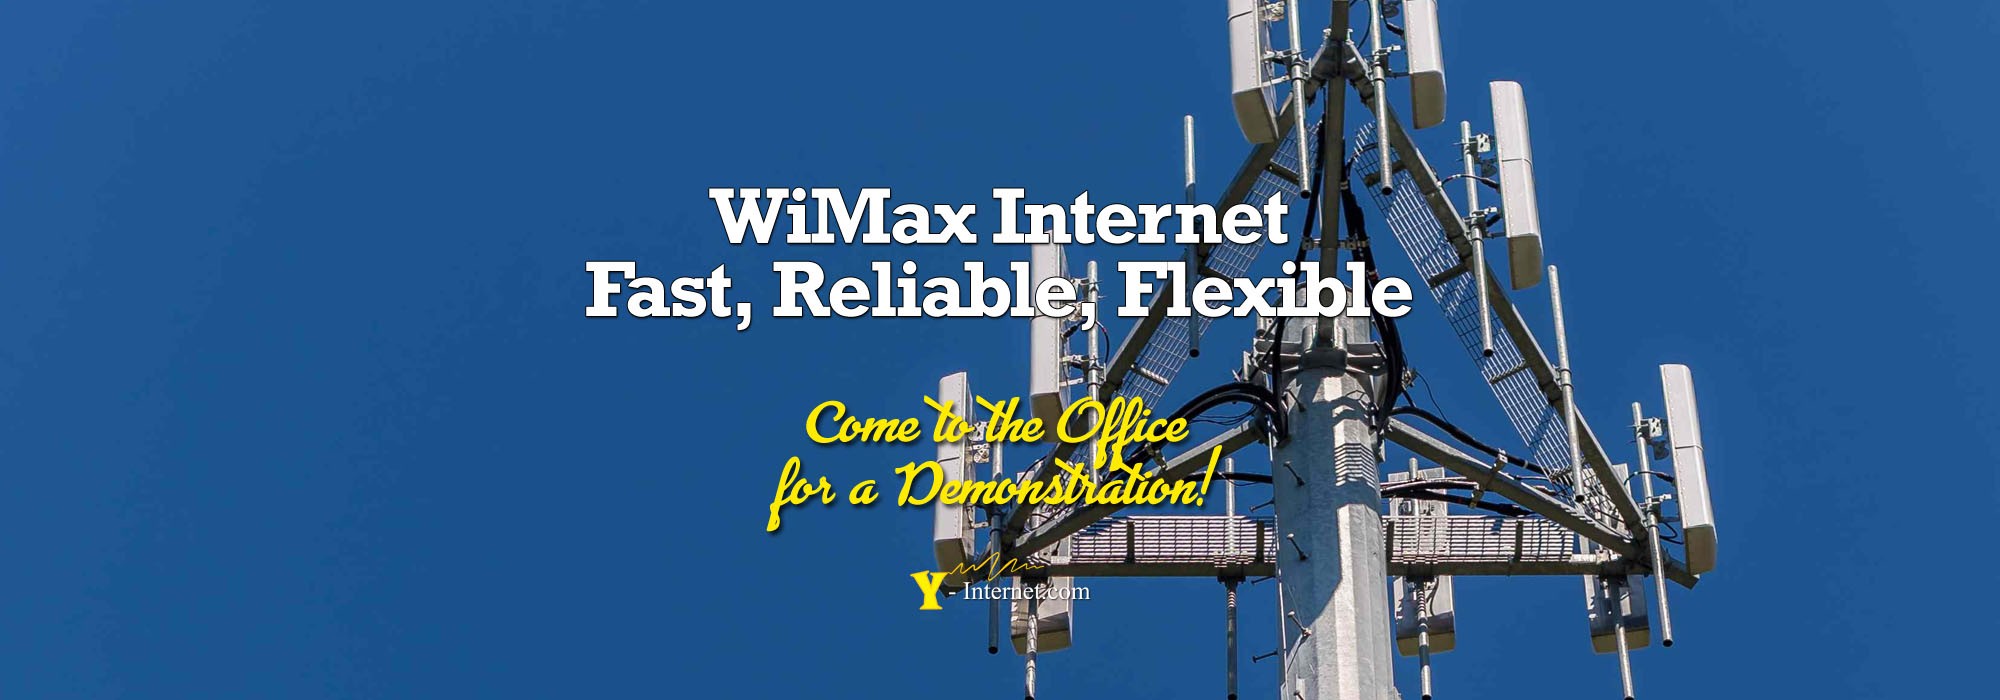 WiMax Internet Connections Y-Internet Sitio de Calahonda S03